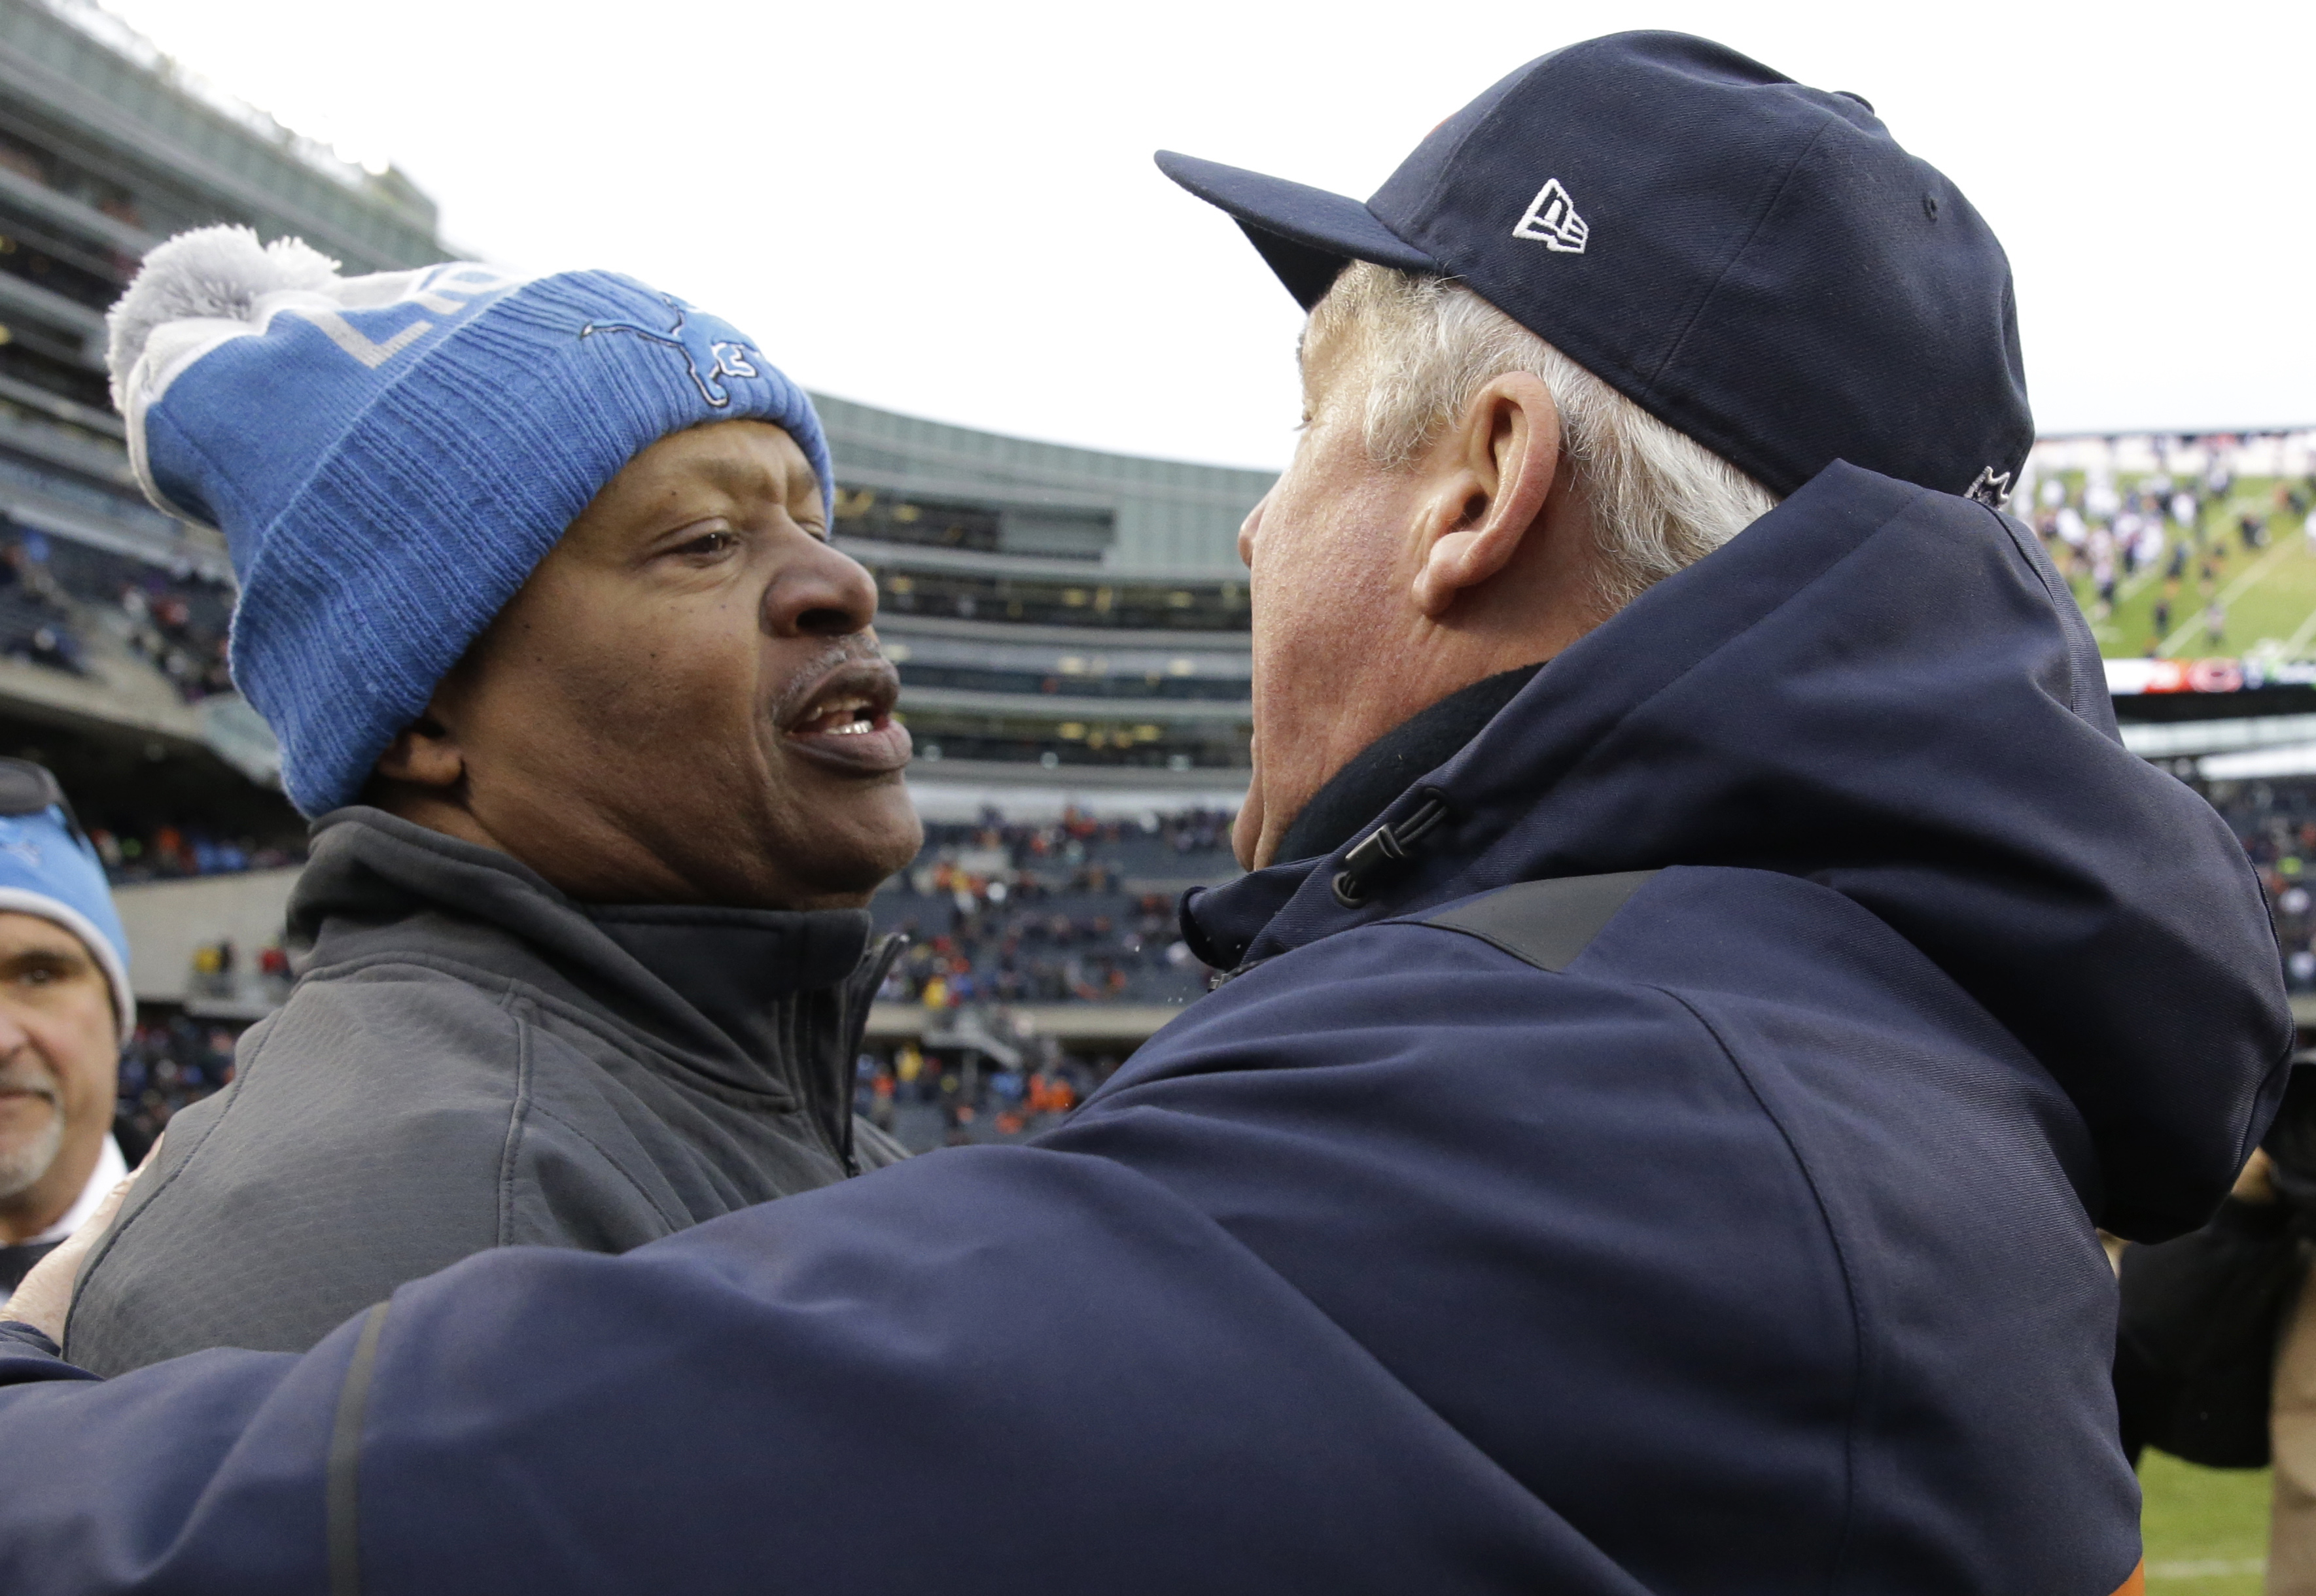 Detroit Lions head coach Jim Caldwell talks to Chicago Bears head coach John Fox after an NFL football game, Sunday, Jan. 3, 2016, in Chicago. The Lions won 24-20. (AP Photo/Nam Y. Huh)